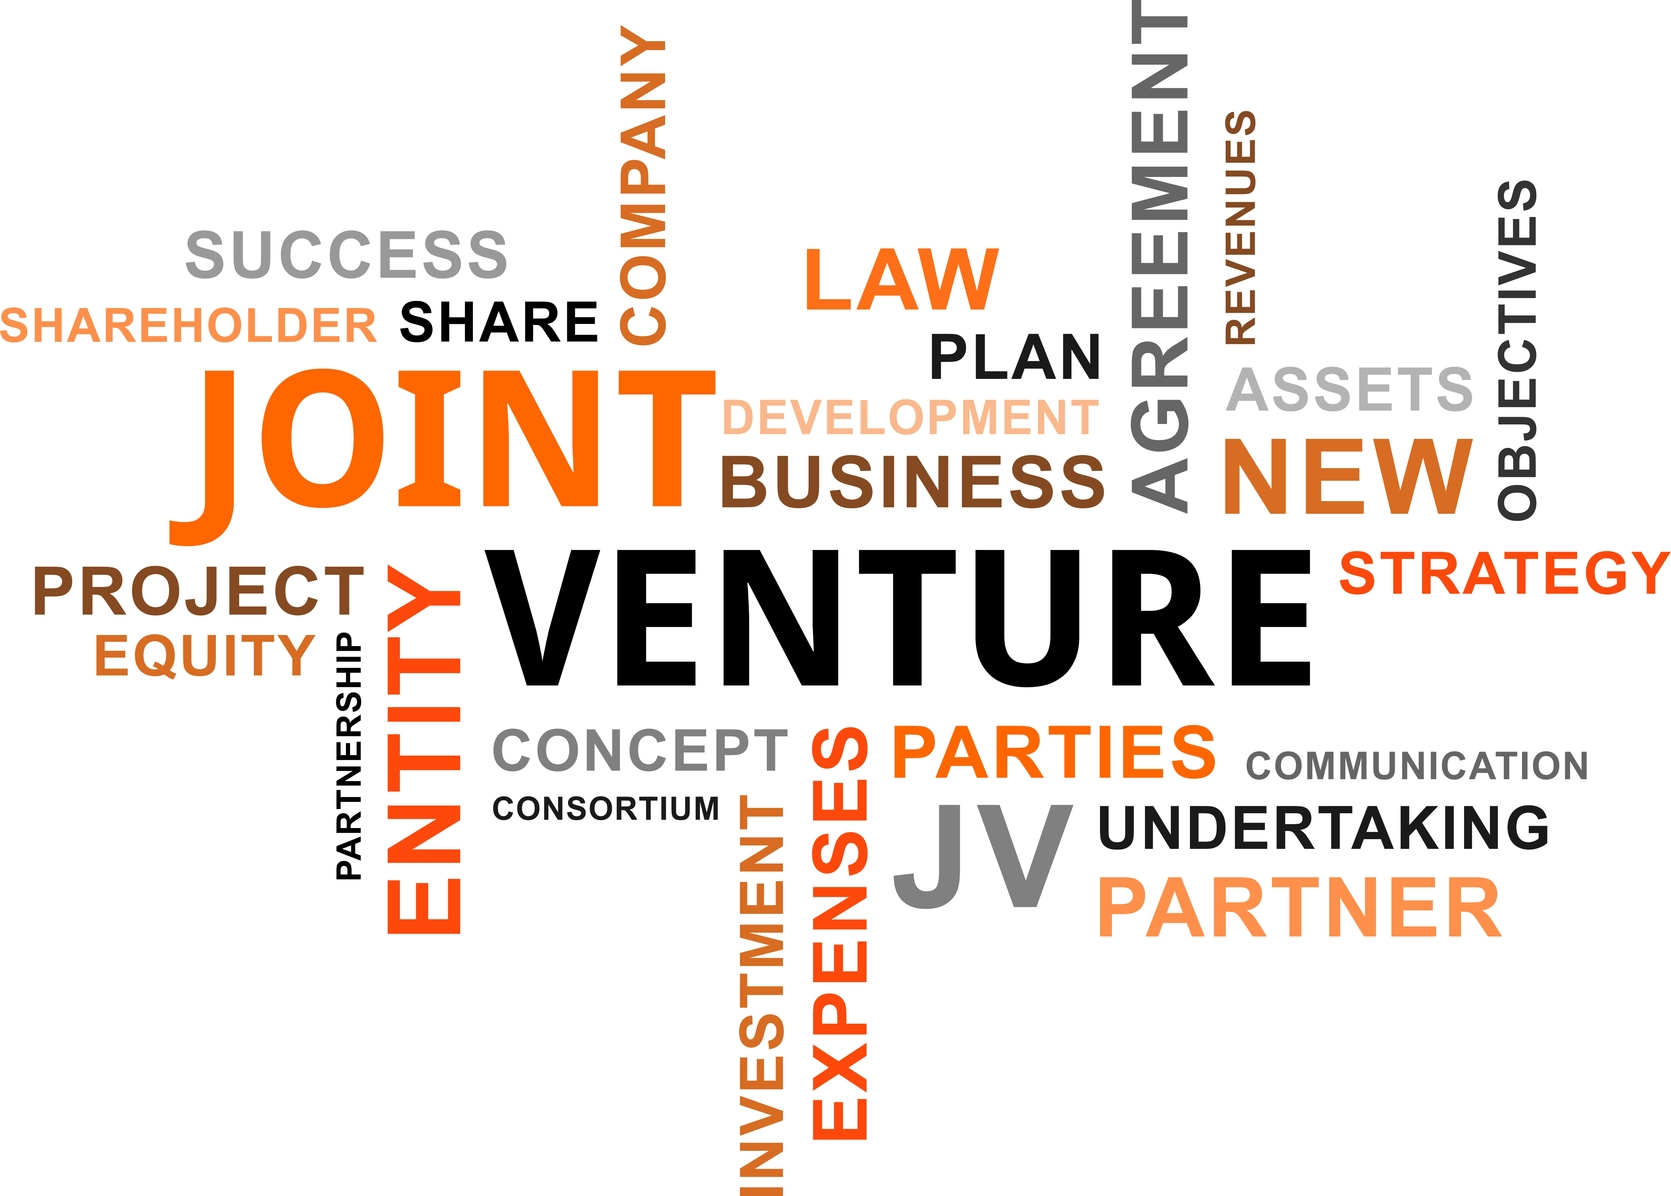 corporate governance of international joint ventures Table of content abstract 1 1 introduction 2 2 international joint ventures organizational structure 3 21 parent firms, ijv managers relation 3.